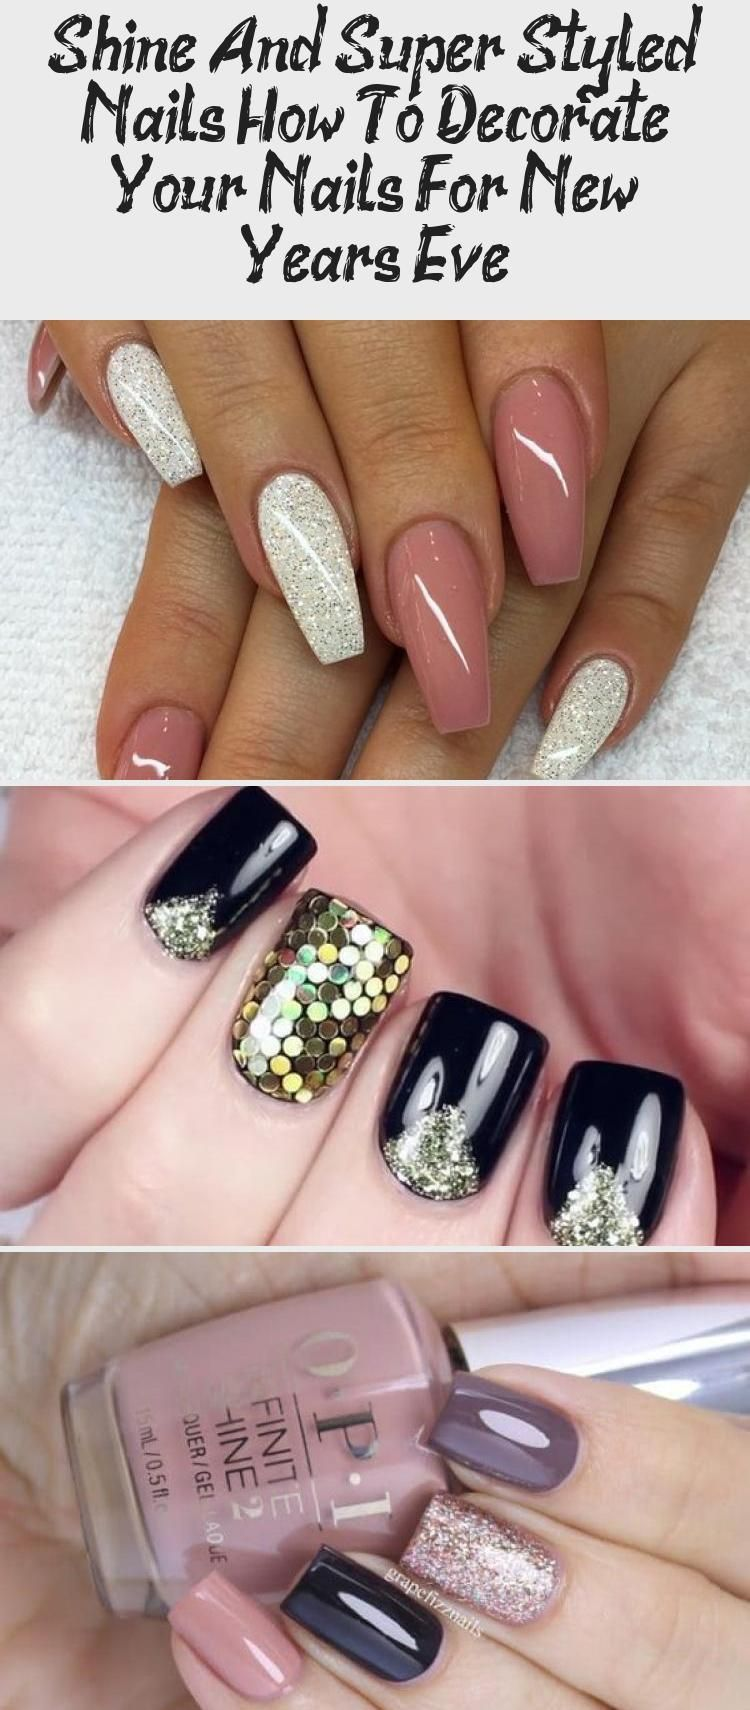 Shine And Super Styled Nails How To Decorate Your Nails